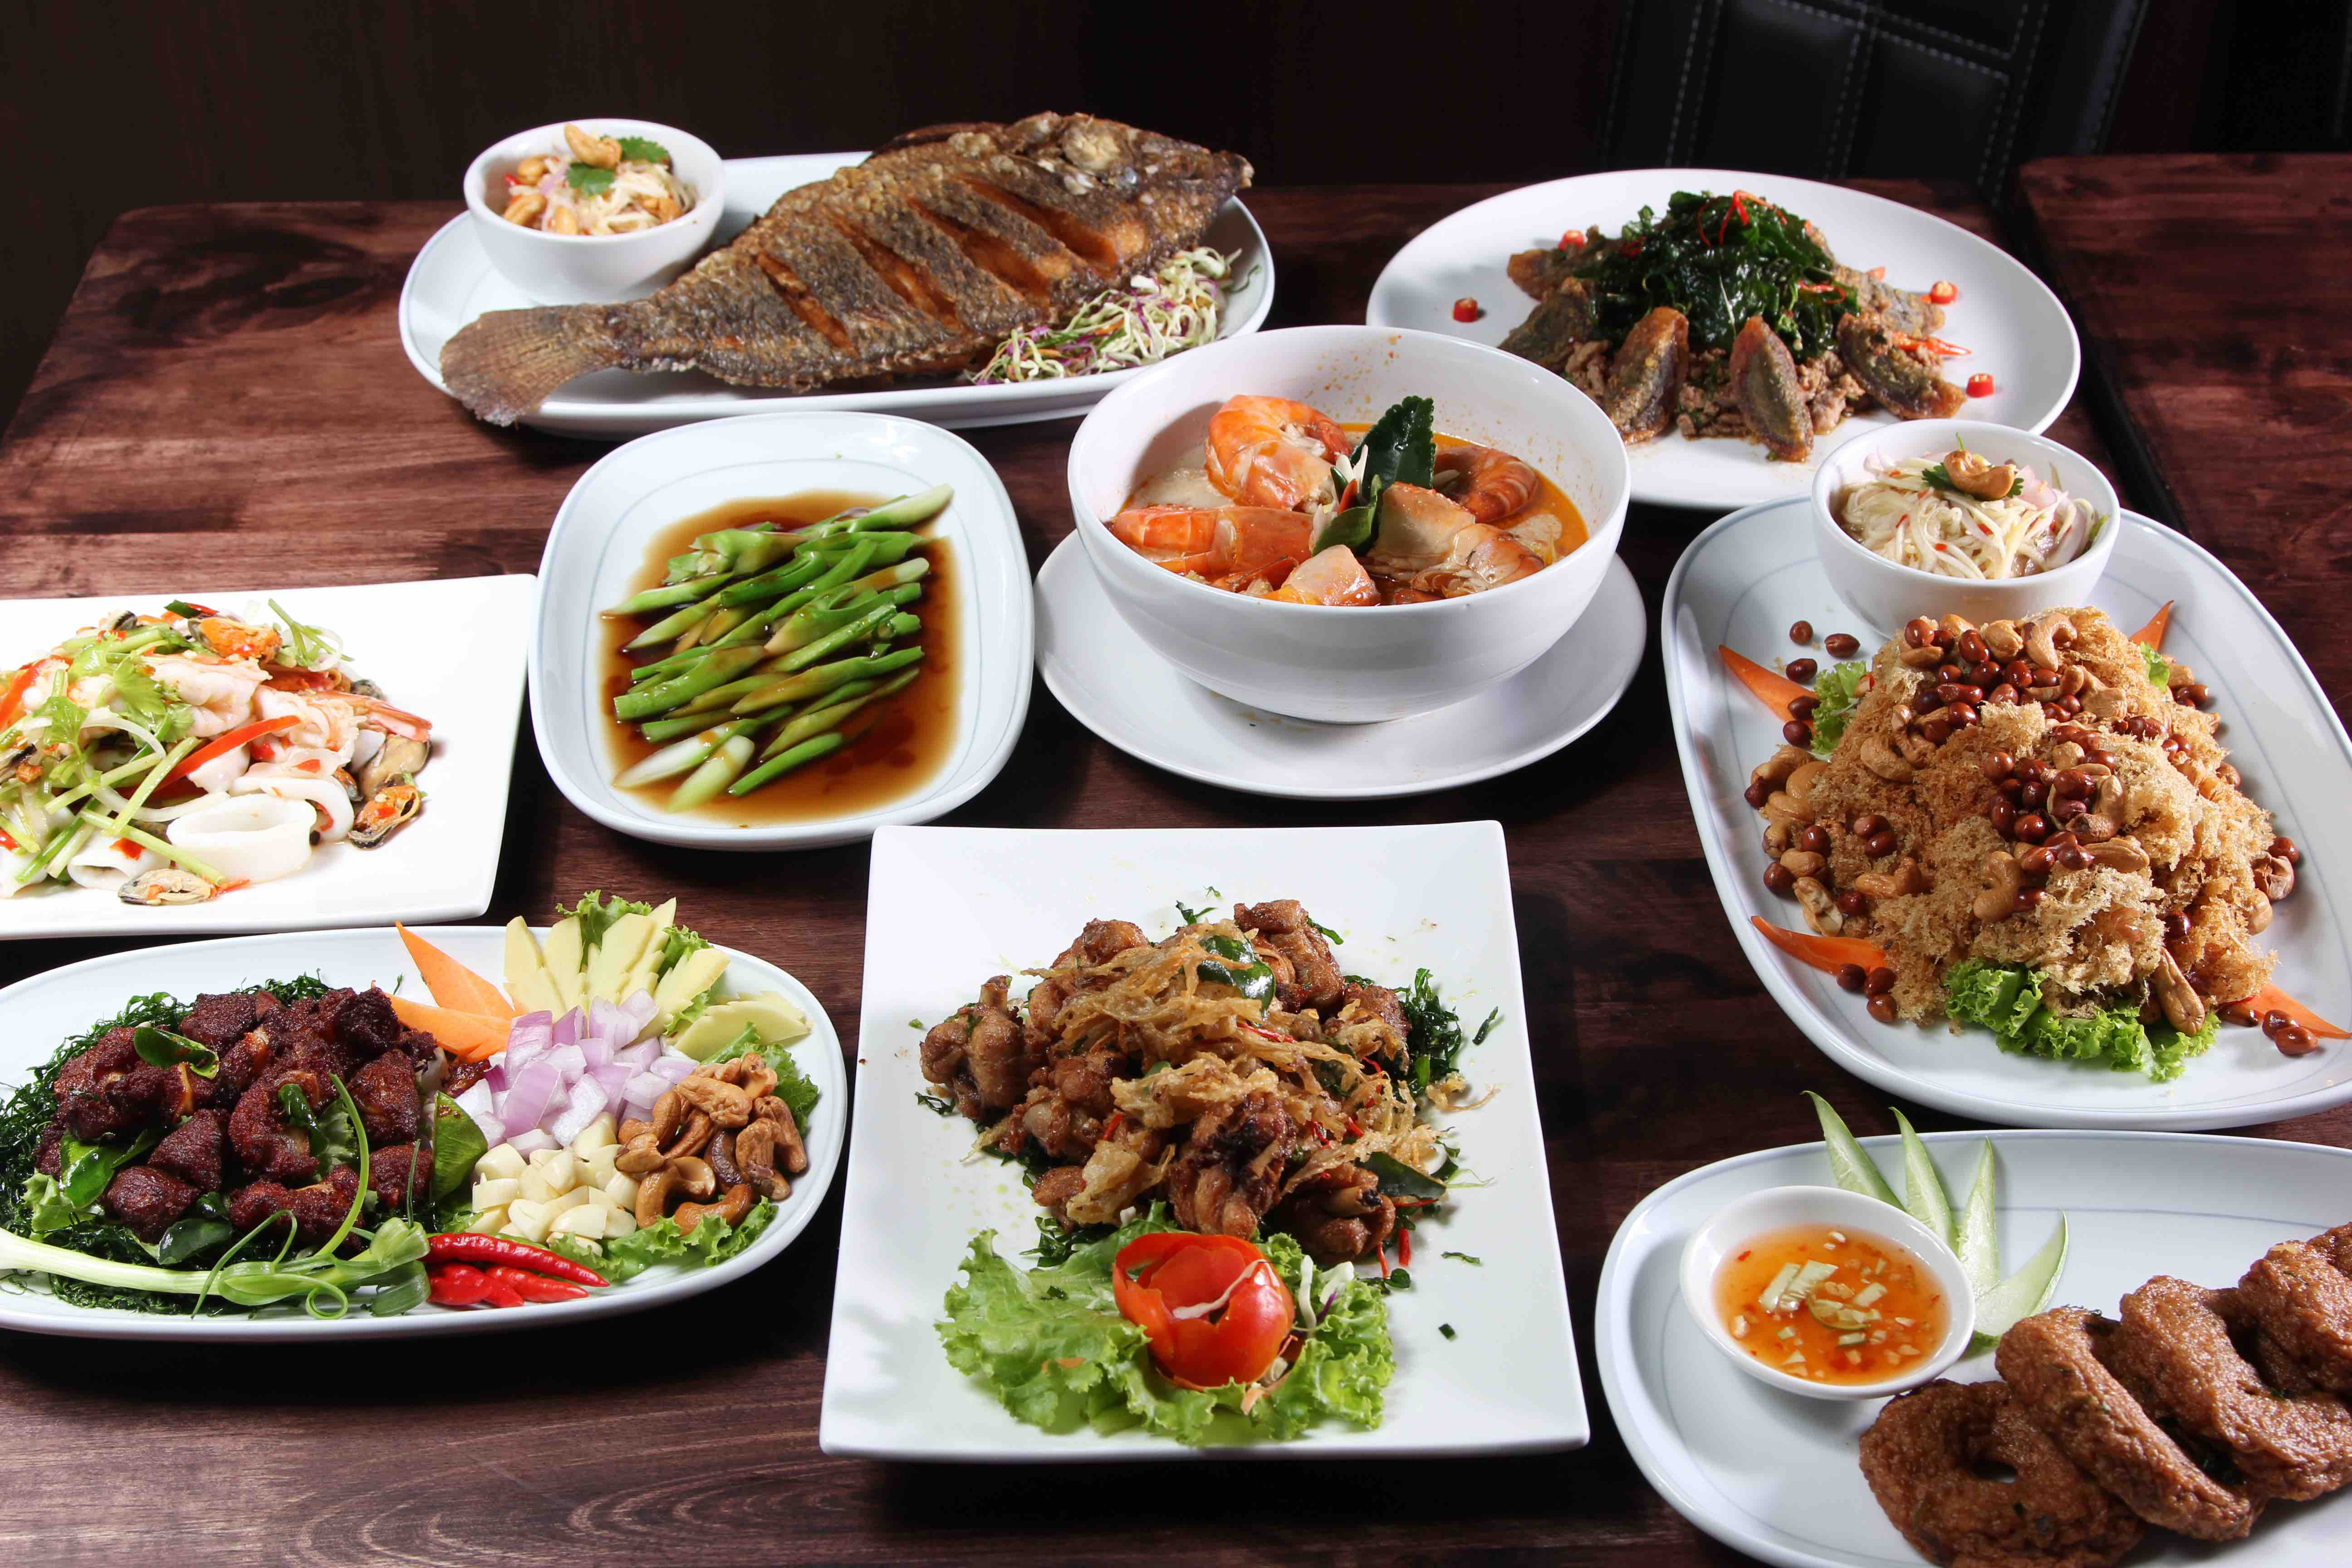 This Is Thailand #2: What's on the Menu?